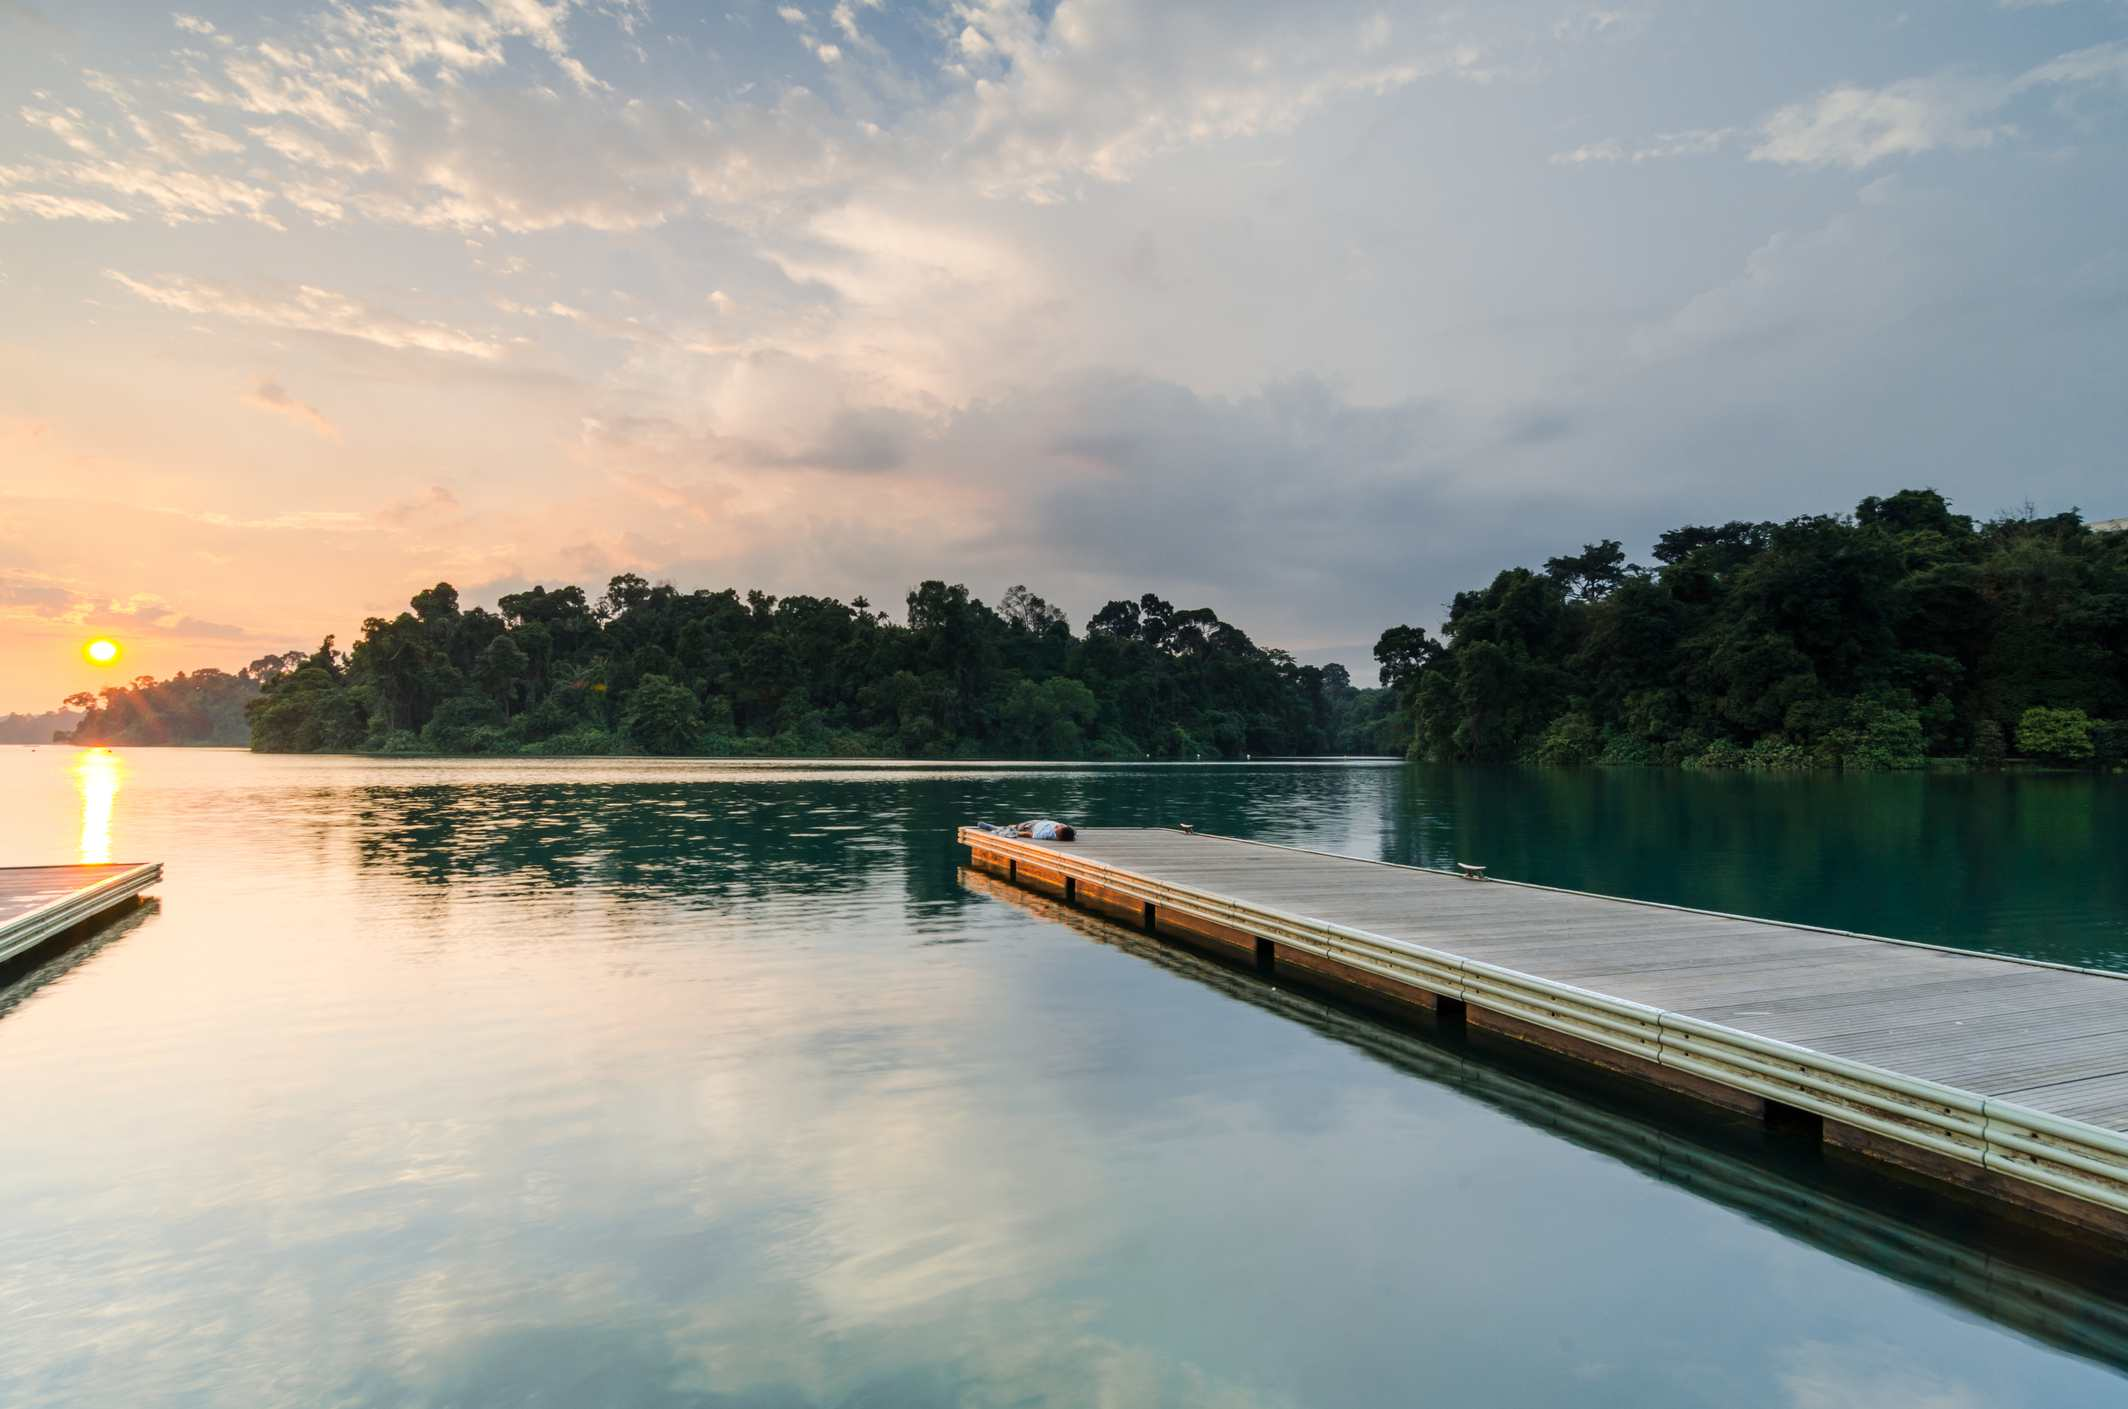 Beautiful sunset at MacRitchie Reservoir which is Singapore's oldest reservoir completed in 1868.